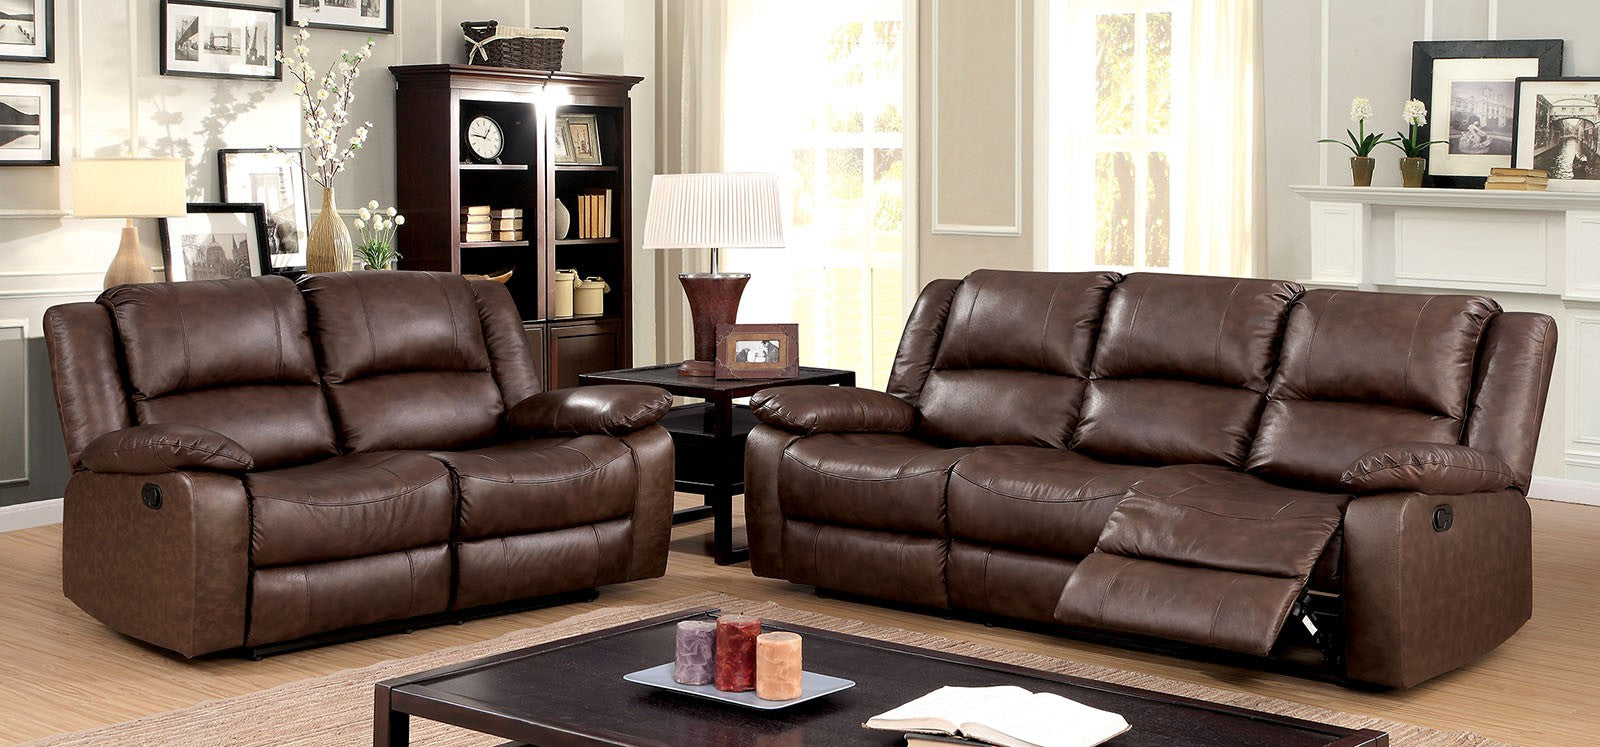 Kris Top Grain Leather Match Brown Transitional Sofa